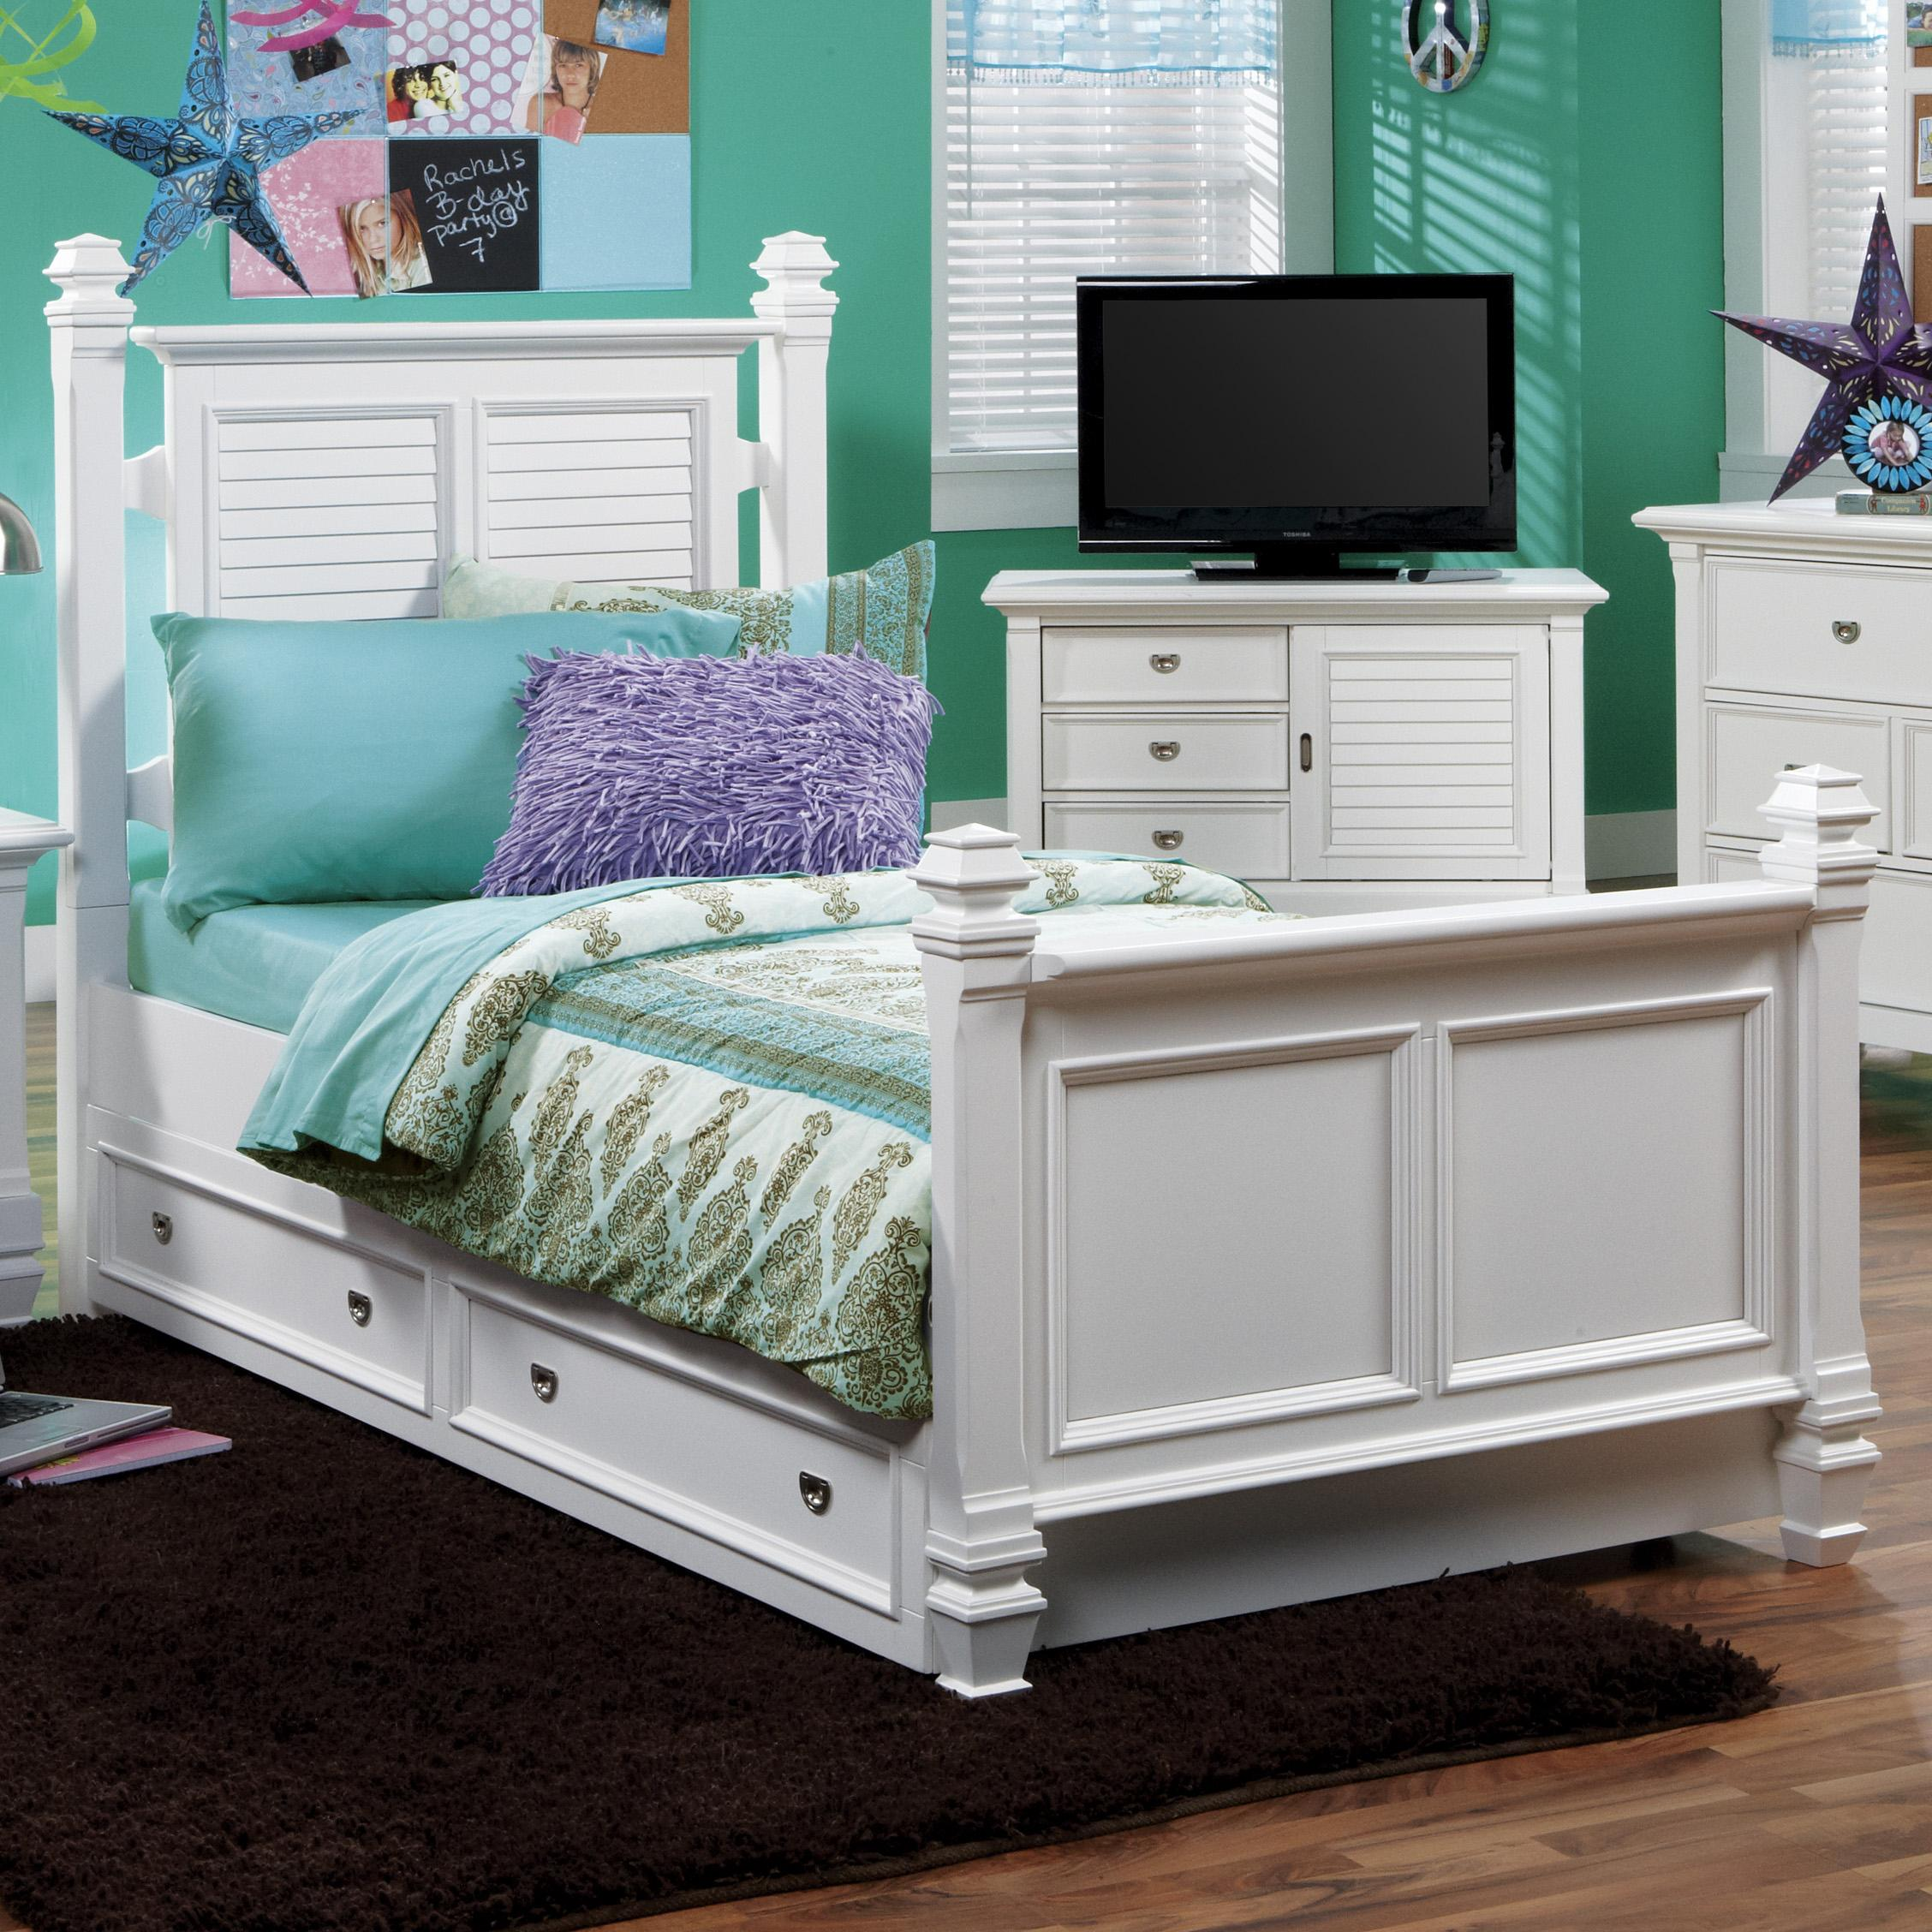 Holland House Belmar Youth Full Poster Bed - Item Number: 2697-27H+27F+17R